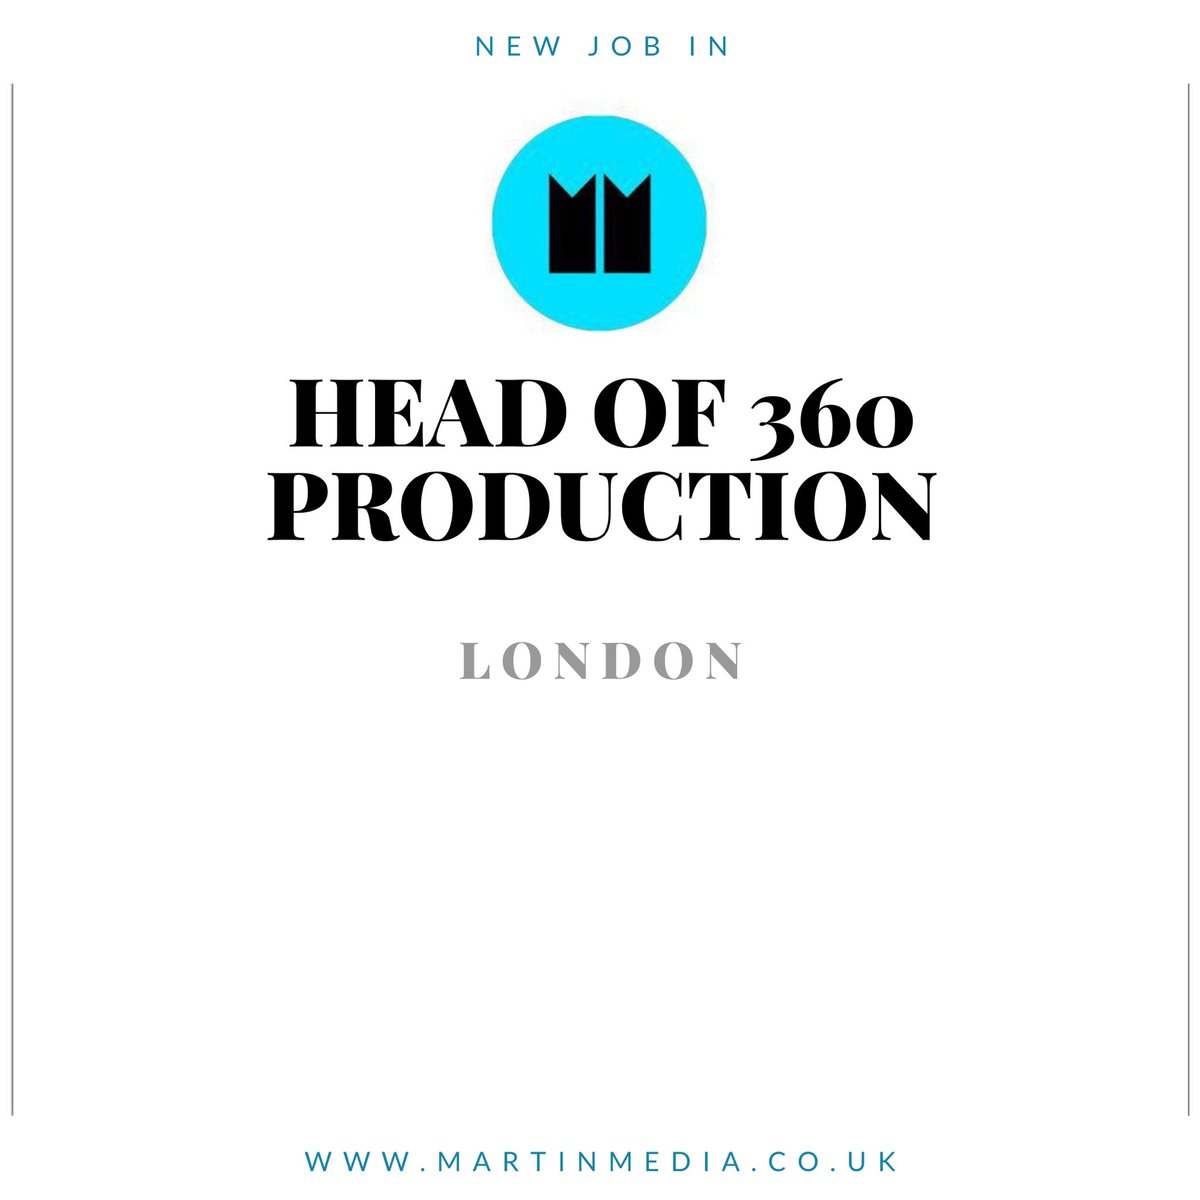 Production company requires top producer stills moving image tv and VFX #photoshoot #tvproducer #filmproduction #photoproducerpic.twitter.com/Oi7hHS83XX